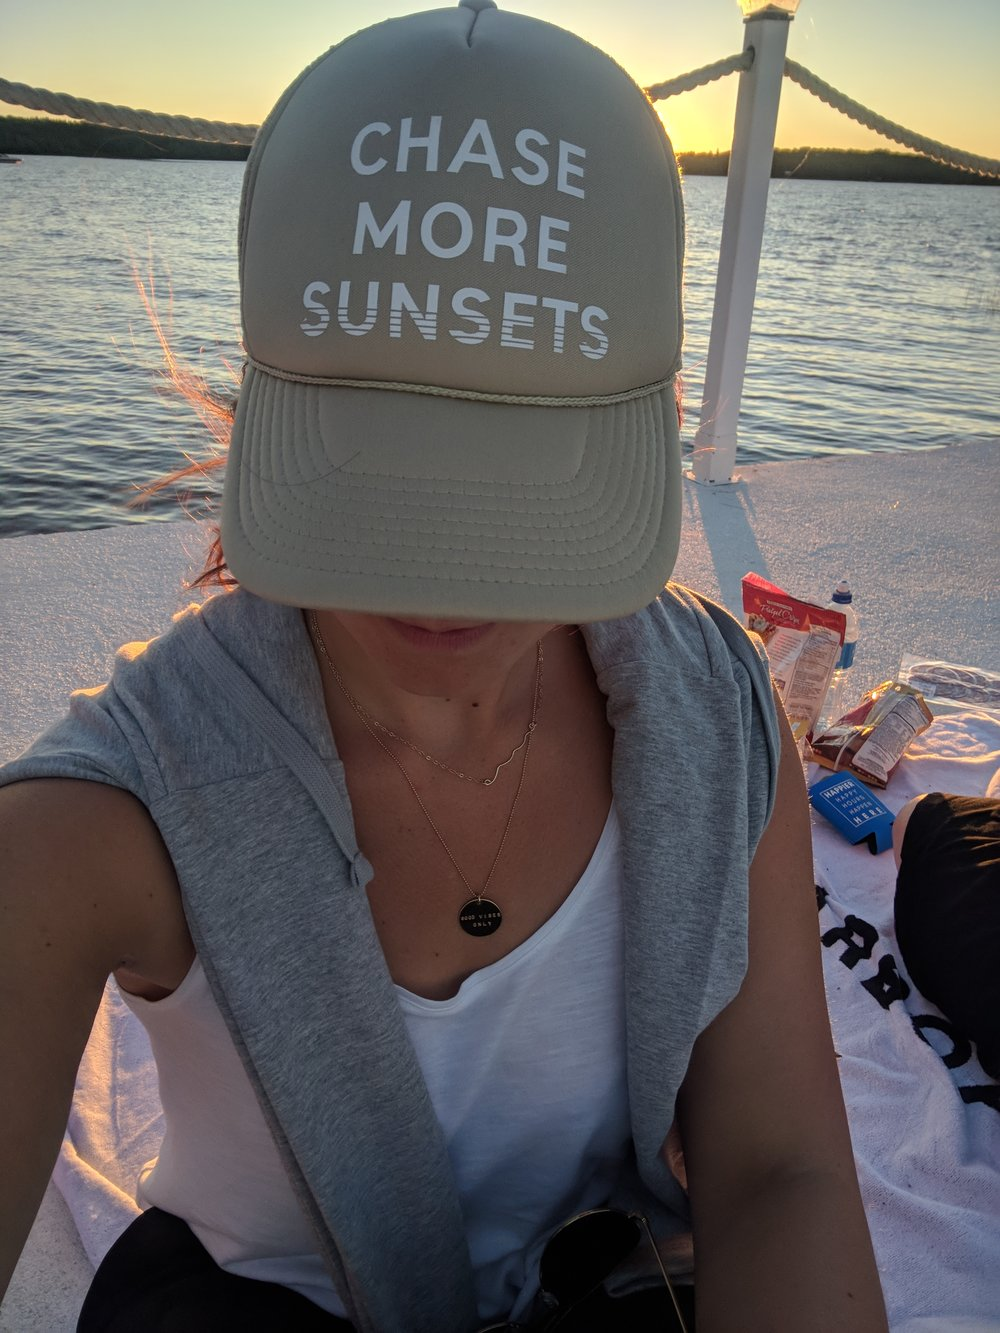 chase more sunset trucker hat on the pier